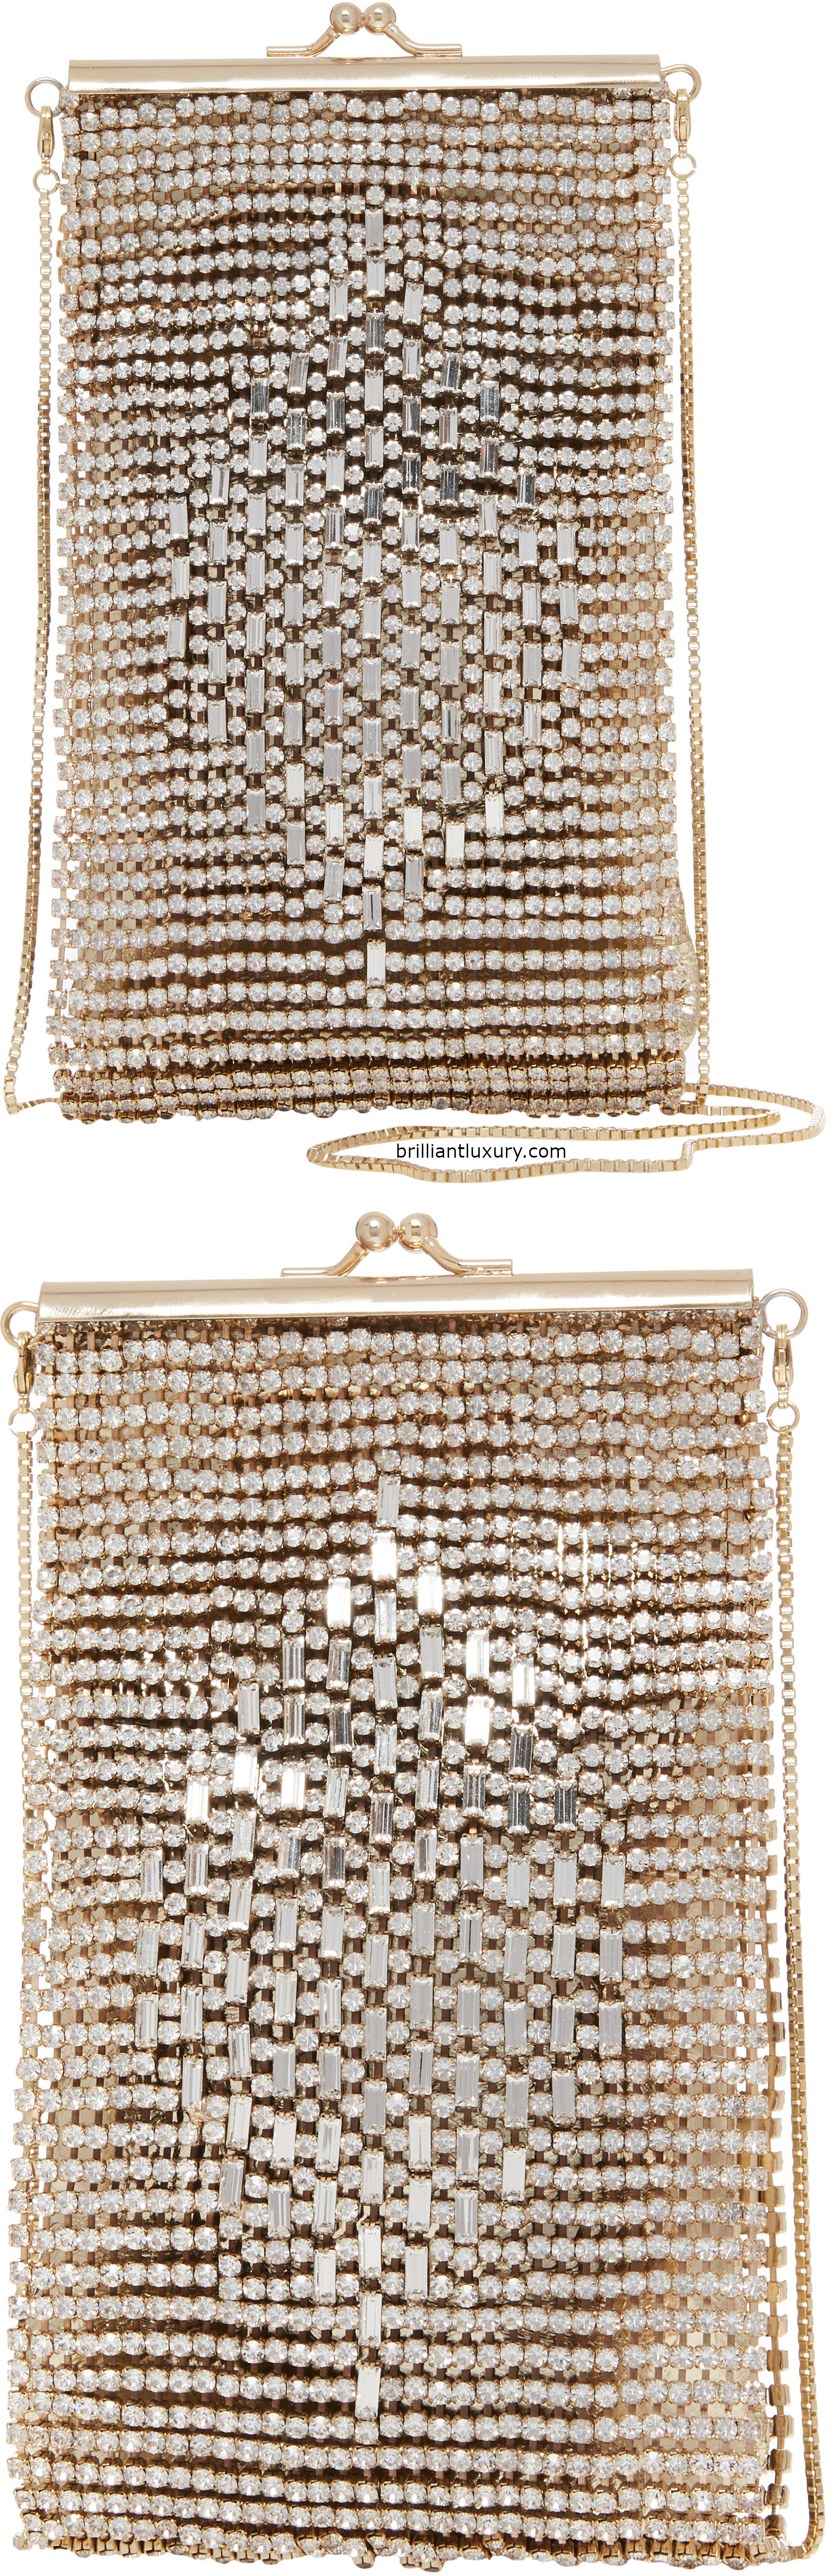 Rosantica Hayley crystal-embellished gold-tone shoulder bag